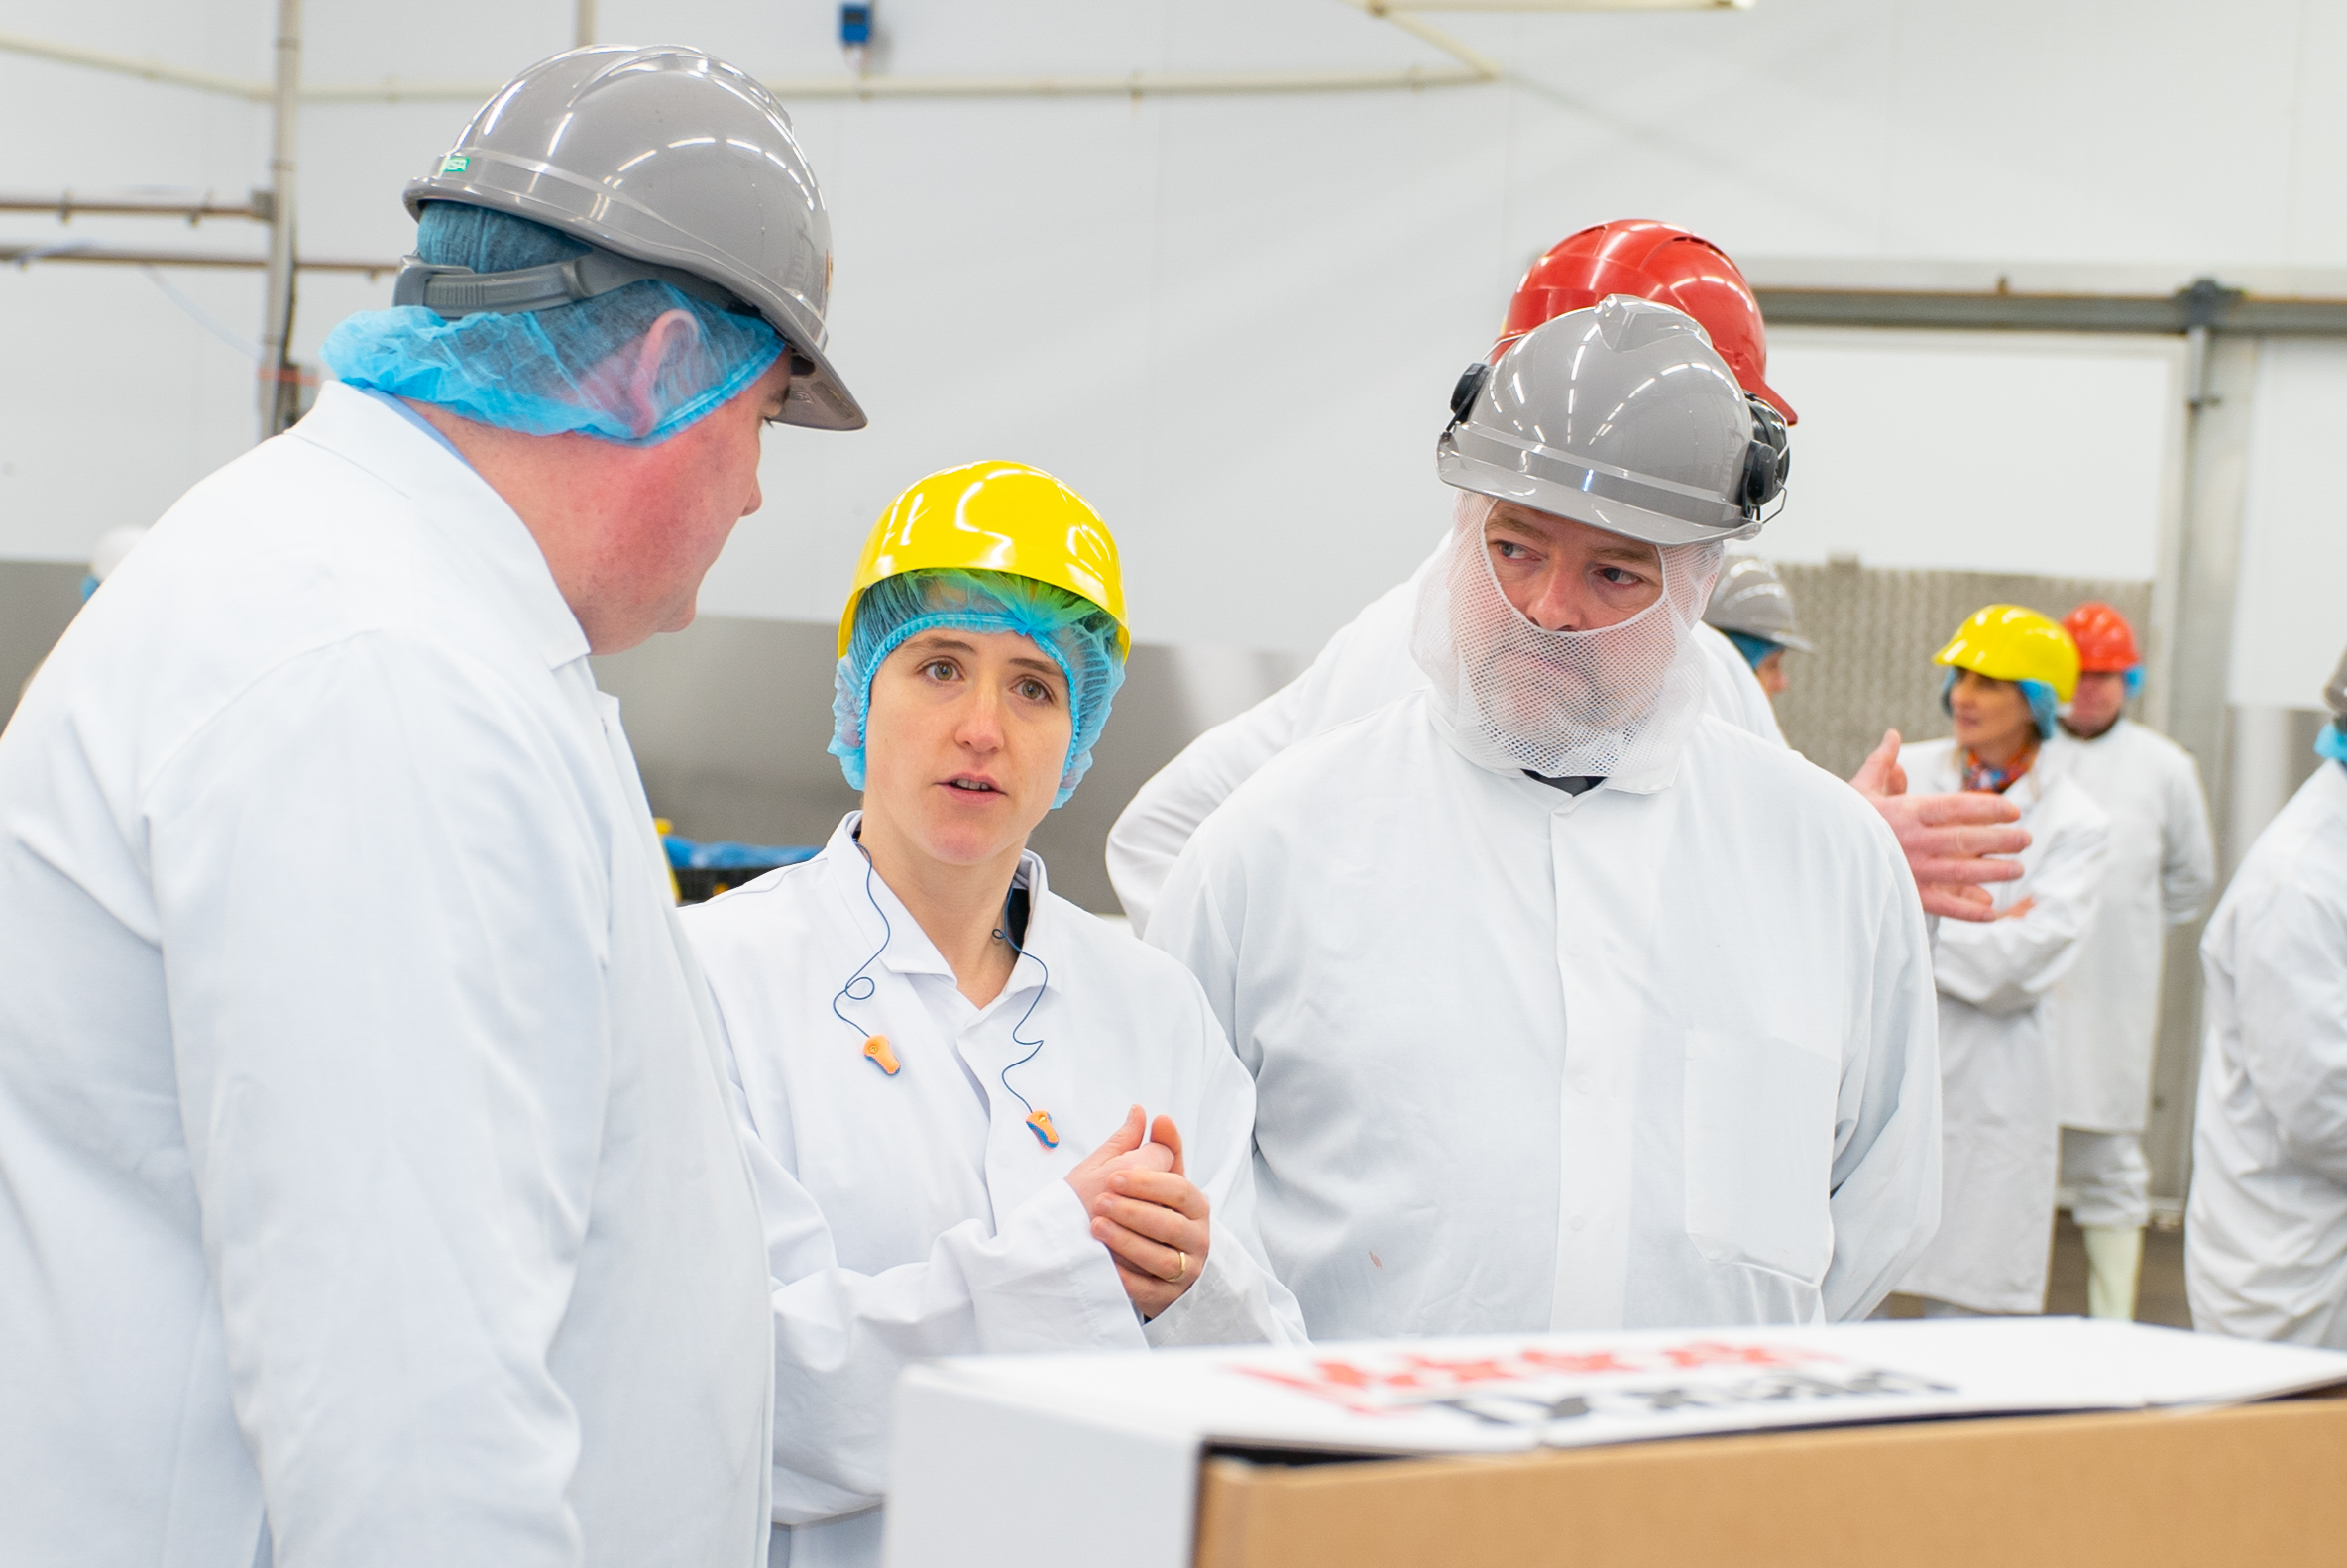 Mairi Gougeon MSP visiting Mcintosh Donald, Kepak Group in Portlethen